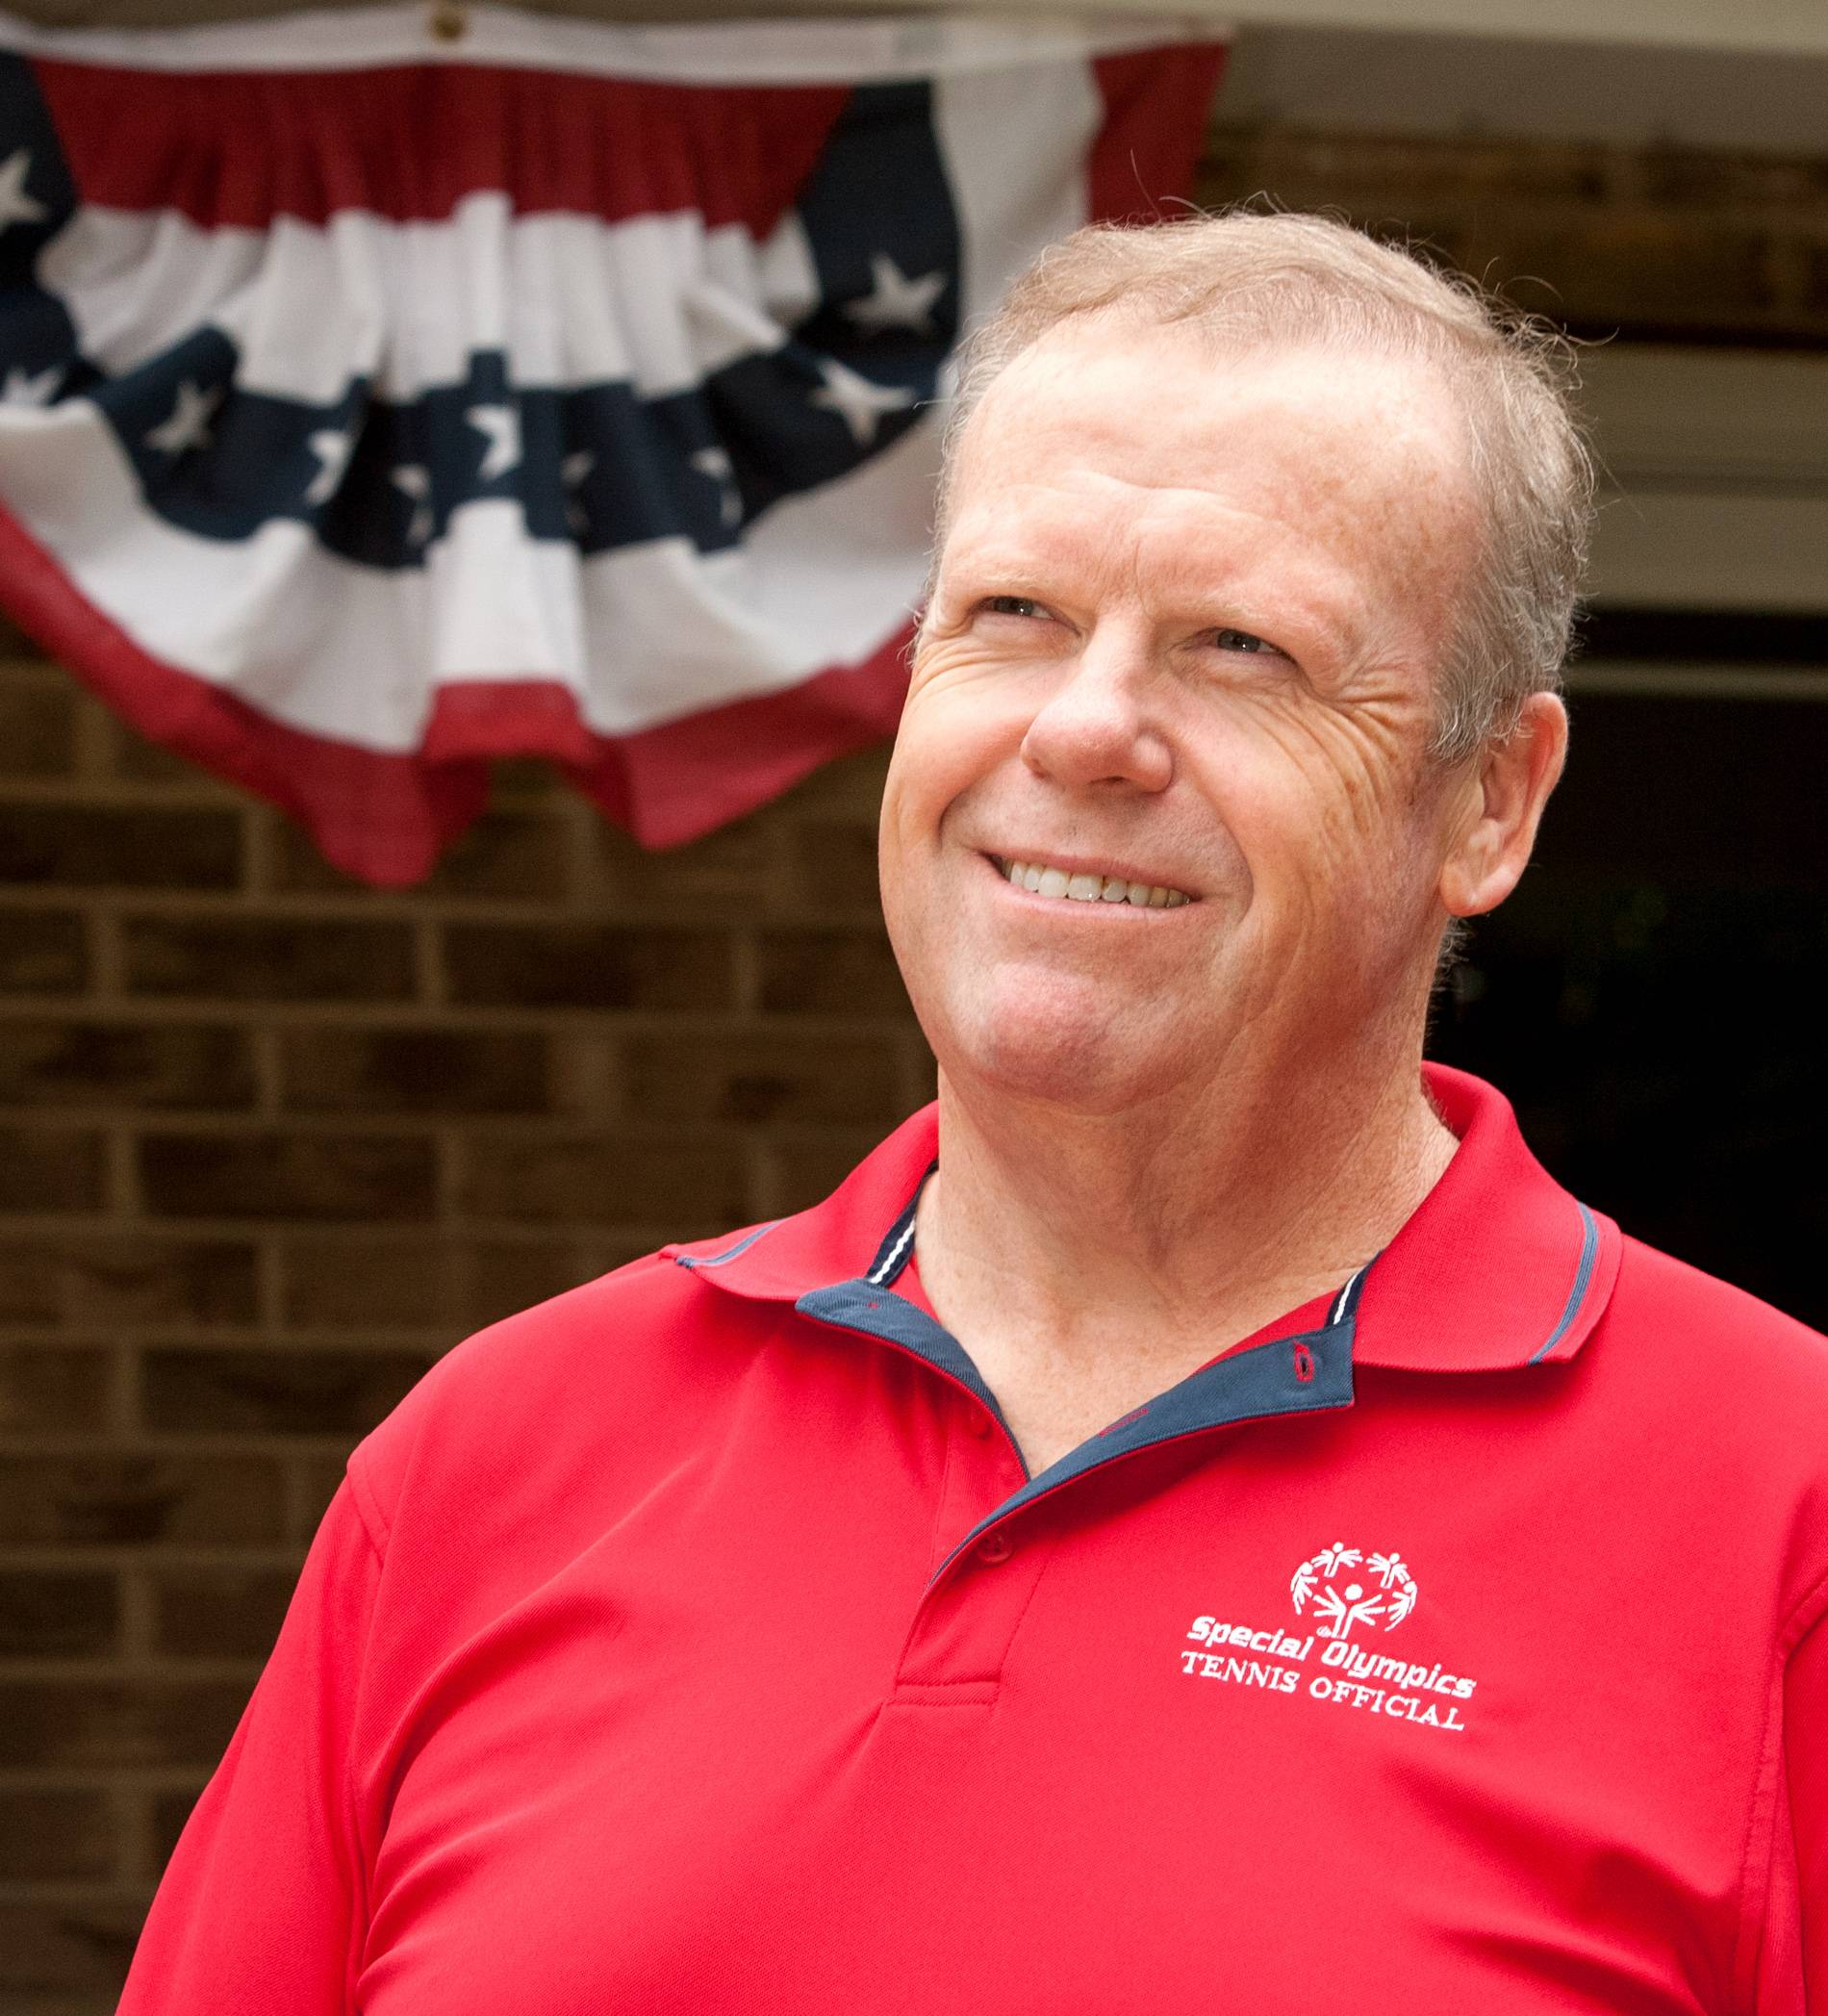 Downers Grove man to officiate second Special Olympics World Games